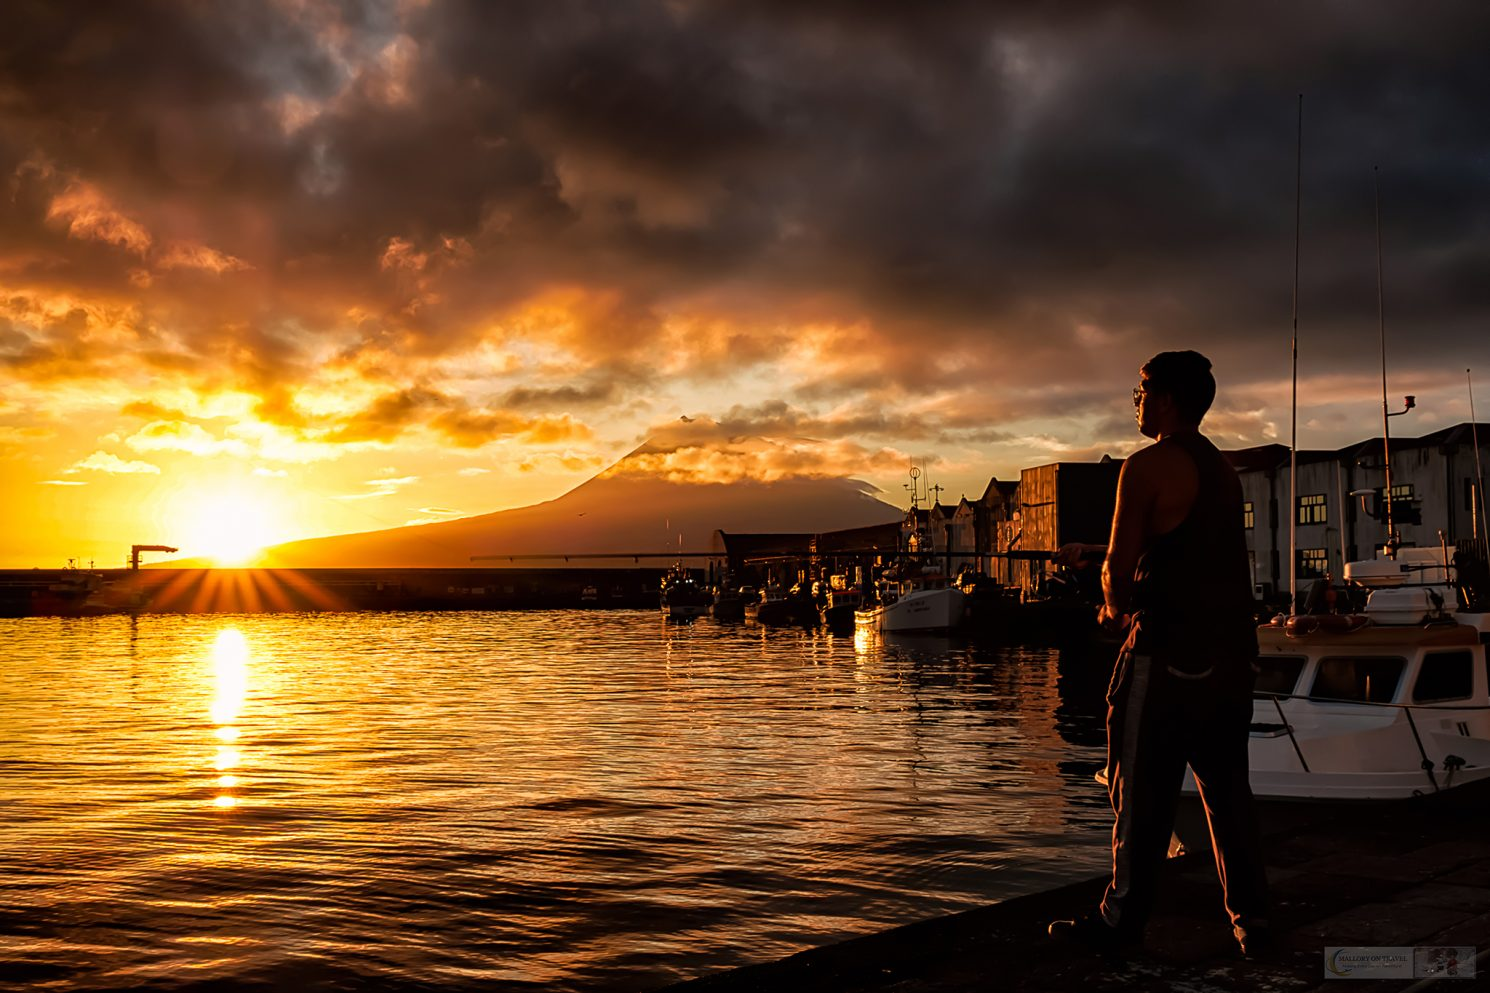 A fisherman at sunrise in the port of Horta on the island of Faial, in the Azores archipelago, Portugal in the Atlantic Ocean on Mallory on Travel adventure travel, photography, travel Iain Mallory_azores-1